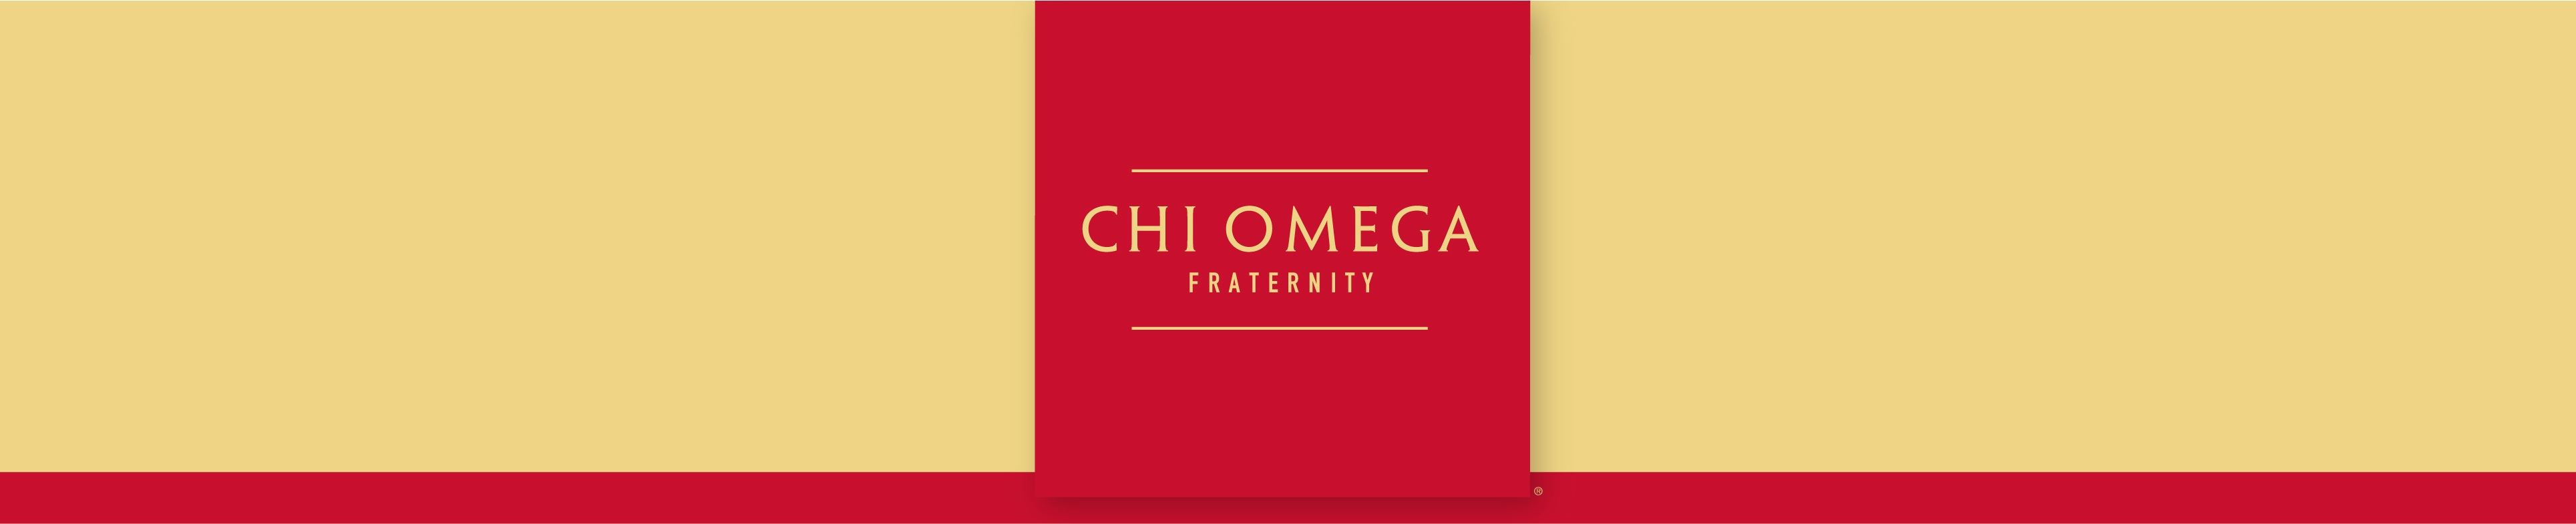 ChiO Email Banner_ChiO Fraternity - Copy